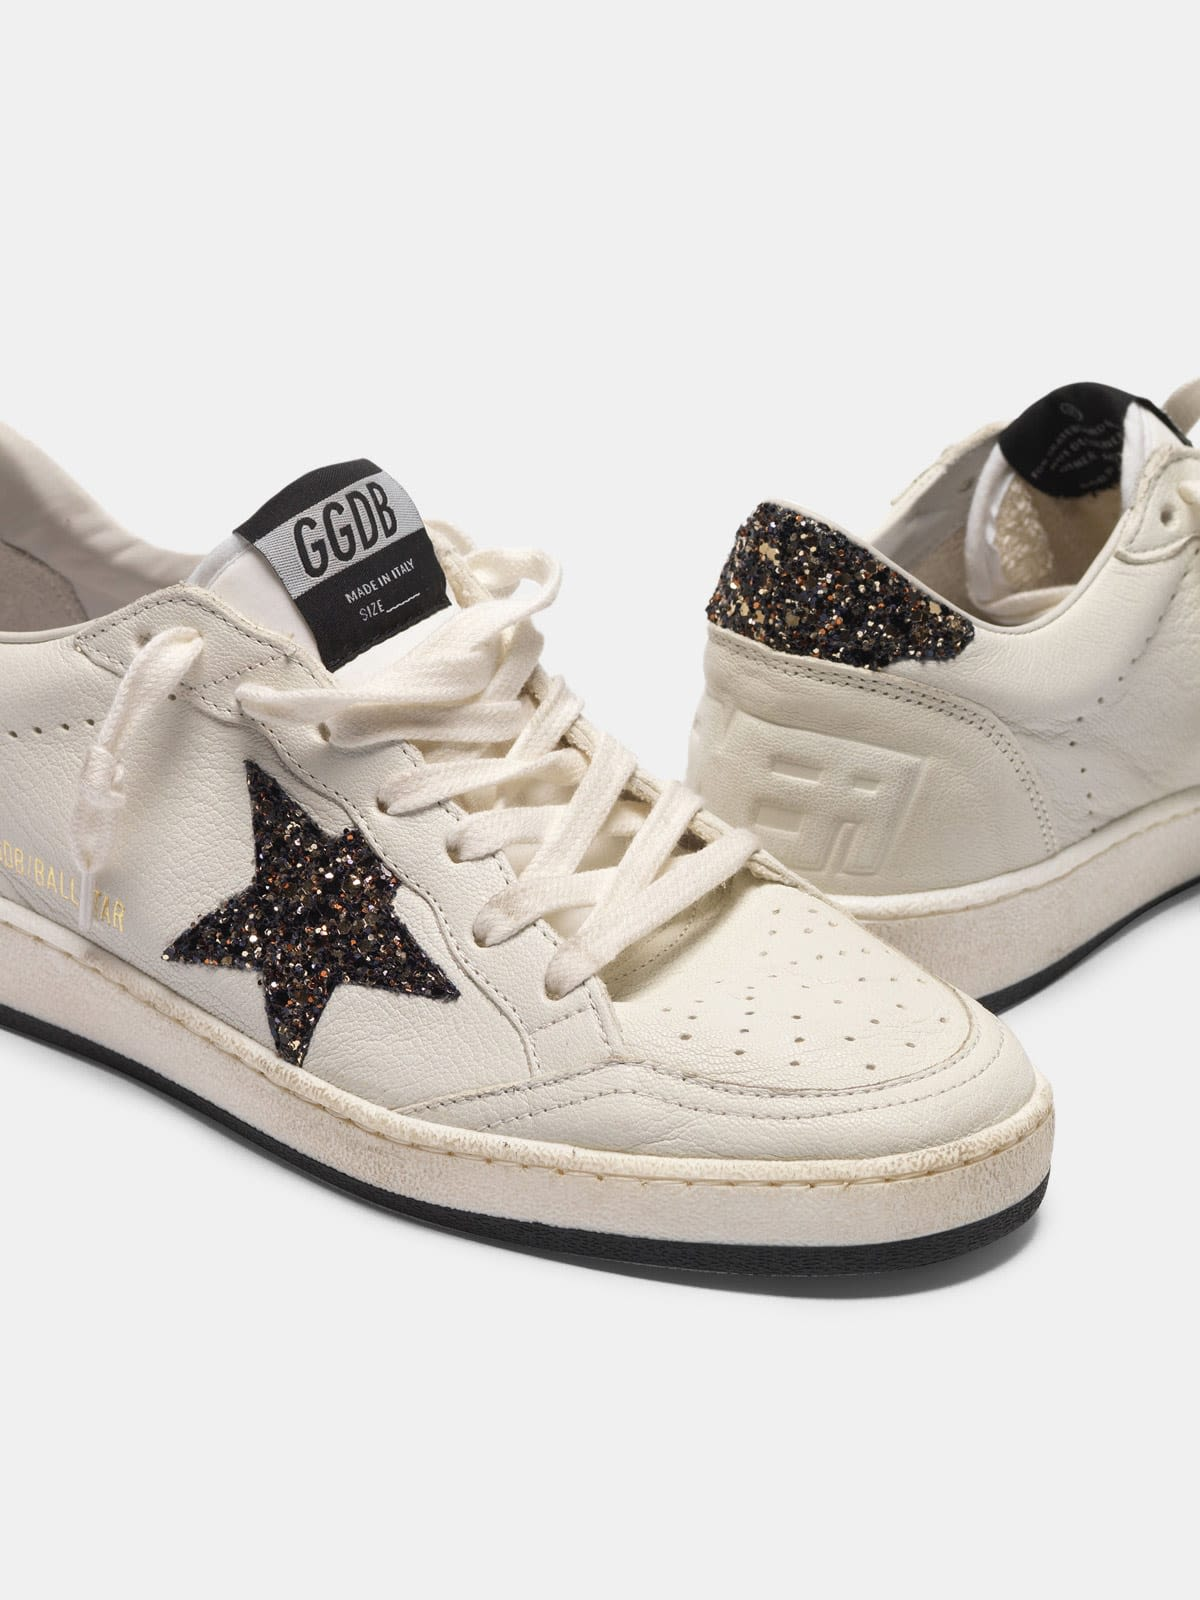 Ball Star sneakers with GGDB star and glittery heel tab